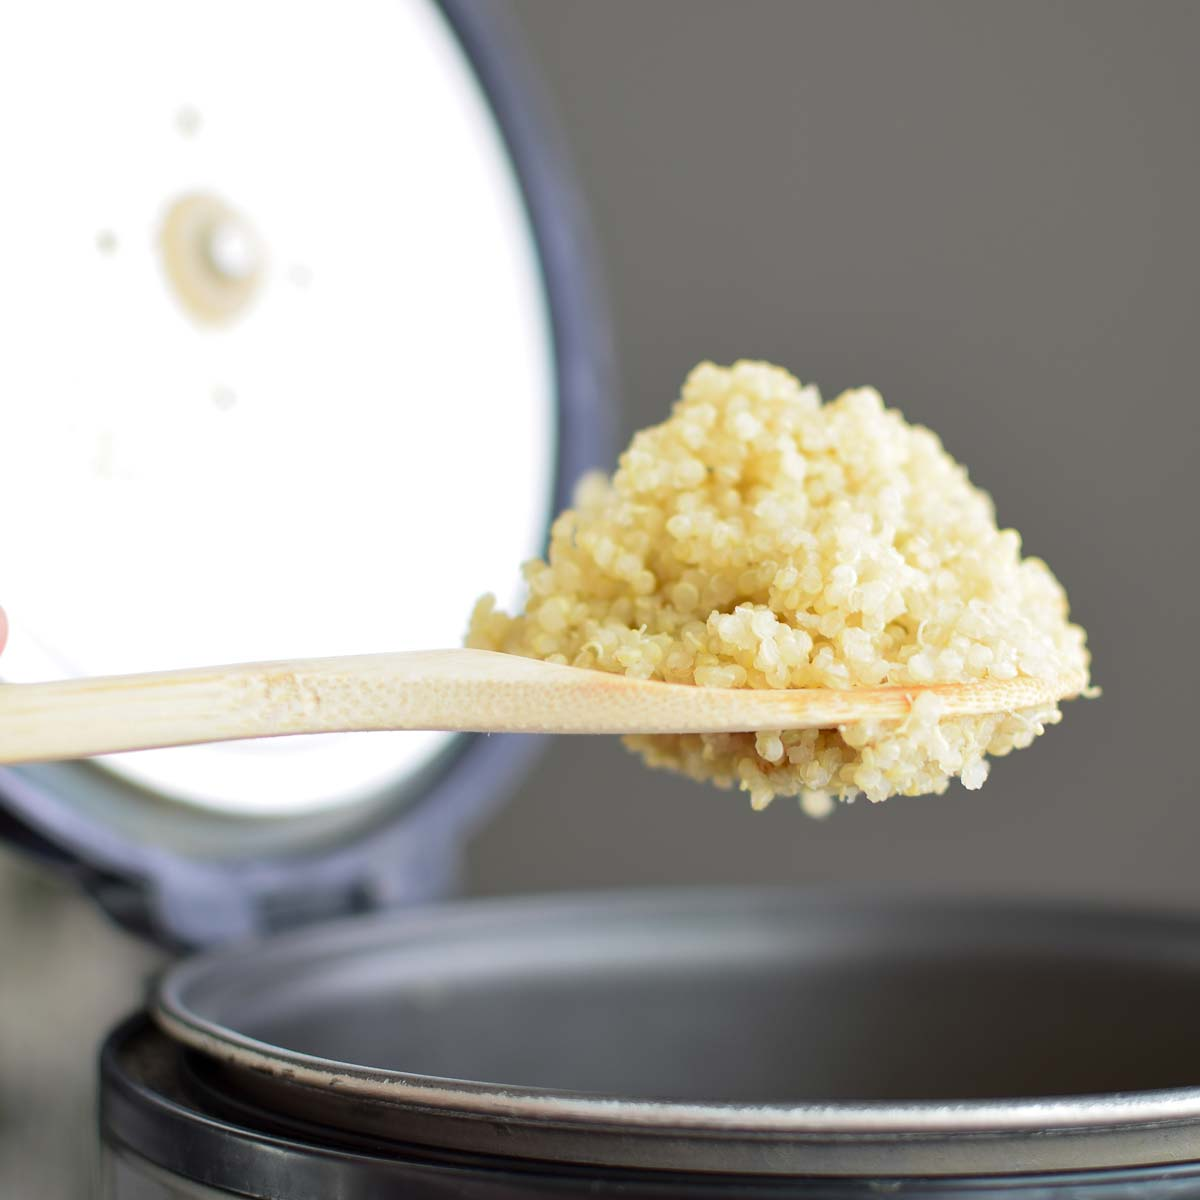 Square photo of a spoonful of quinoa being lifted from a rice cooker.